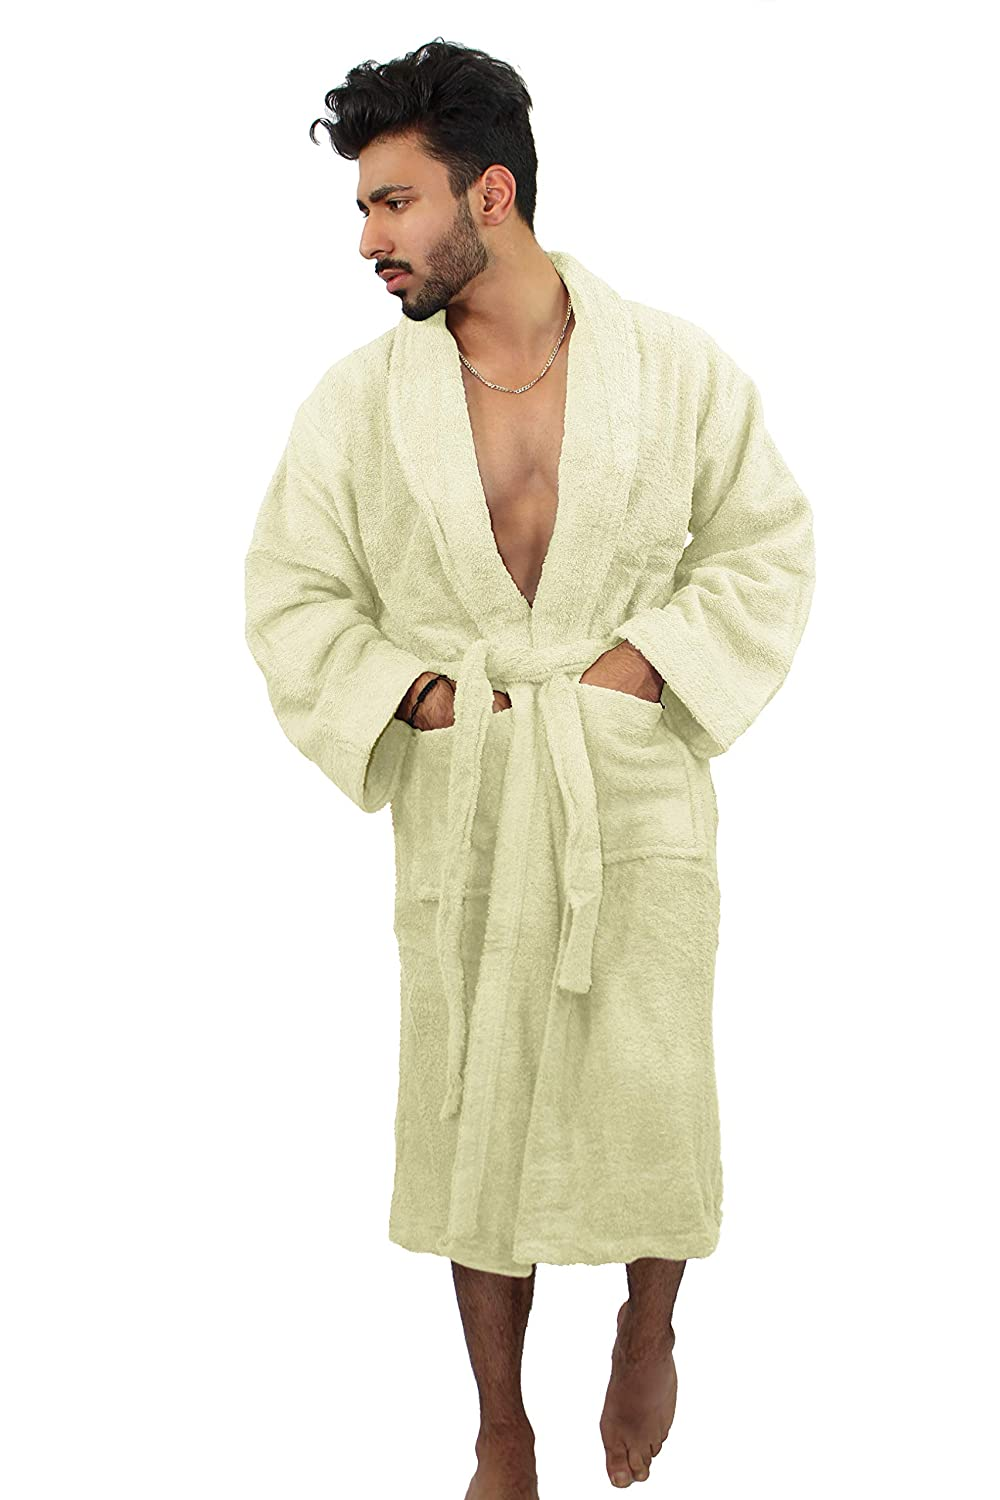 Soft,Robe Dressing Gown Holiday Spa Gym Belt 2 Pockets TOYIS Mens Towelling Bath Robe with Hood